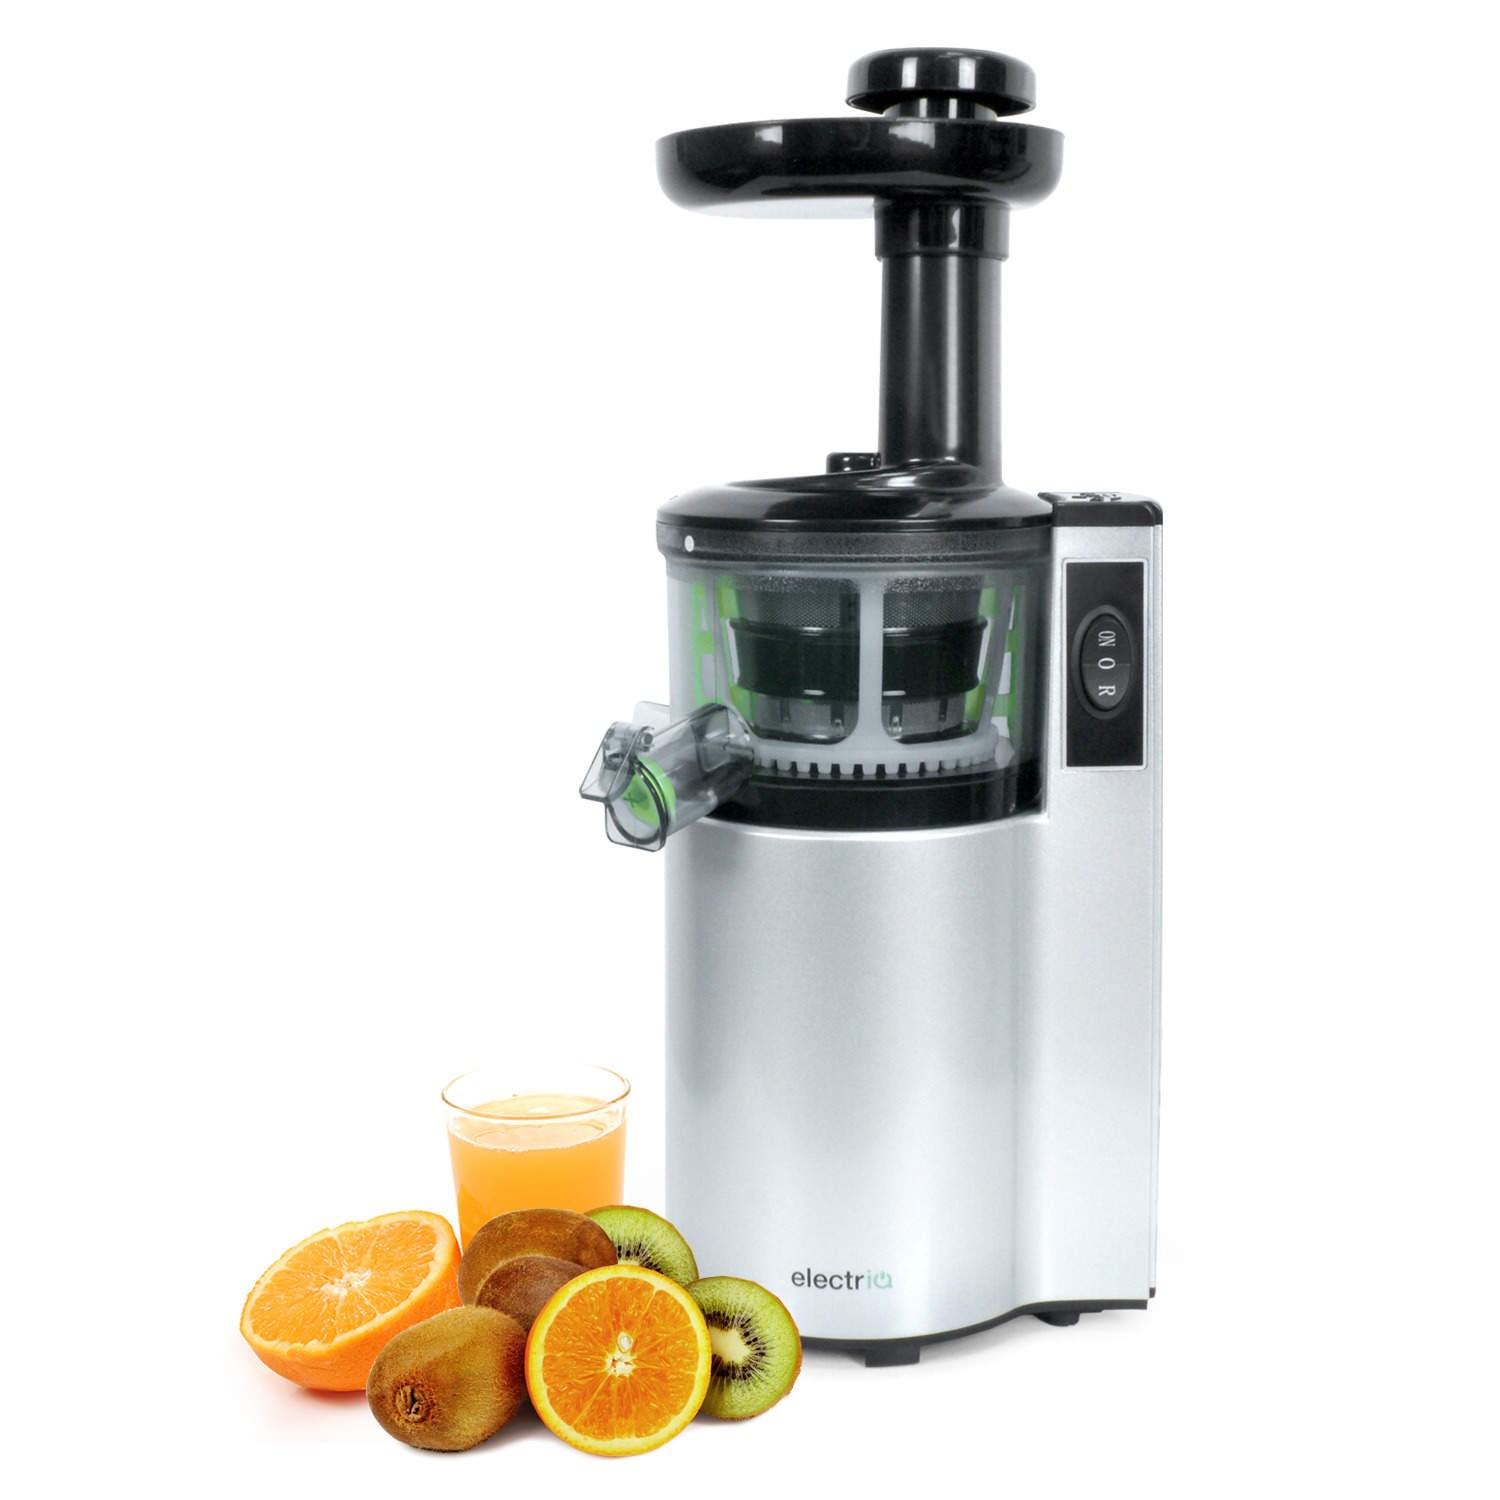 Best Seller Slow Juicer : ElectriQ vertical Slow Masticating Juicer Fruit vegetable Juice Extractor eBay